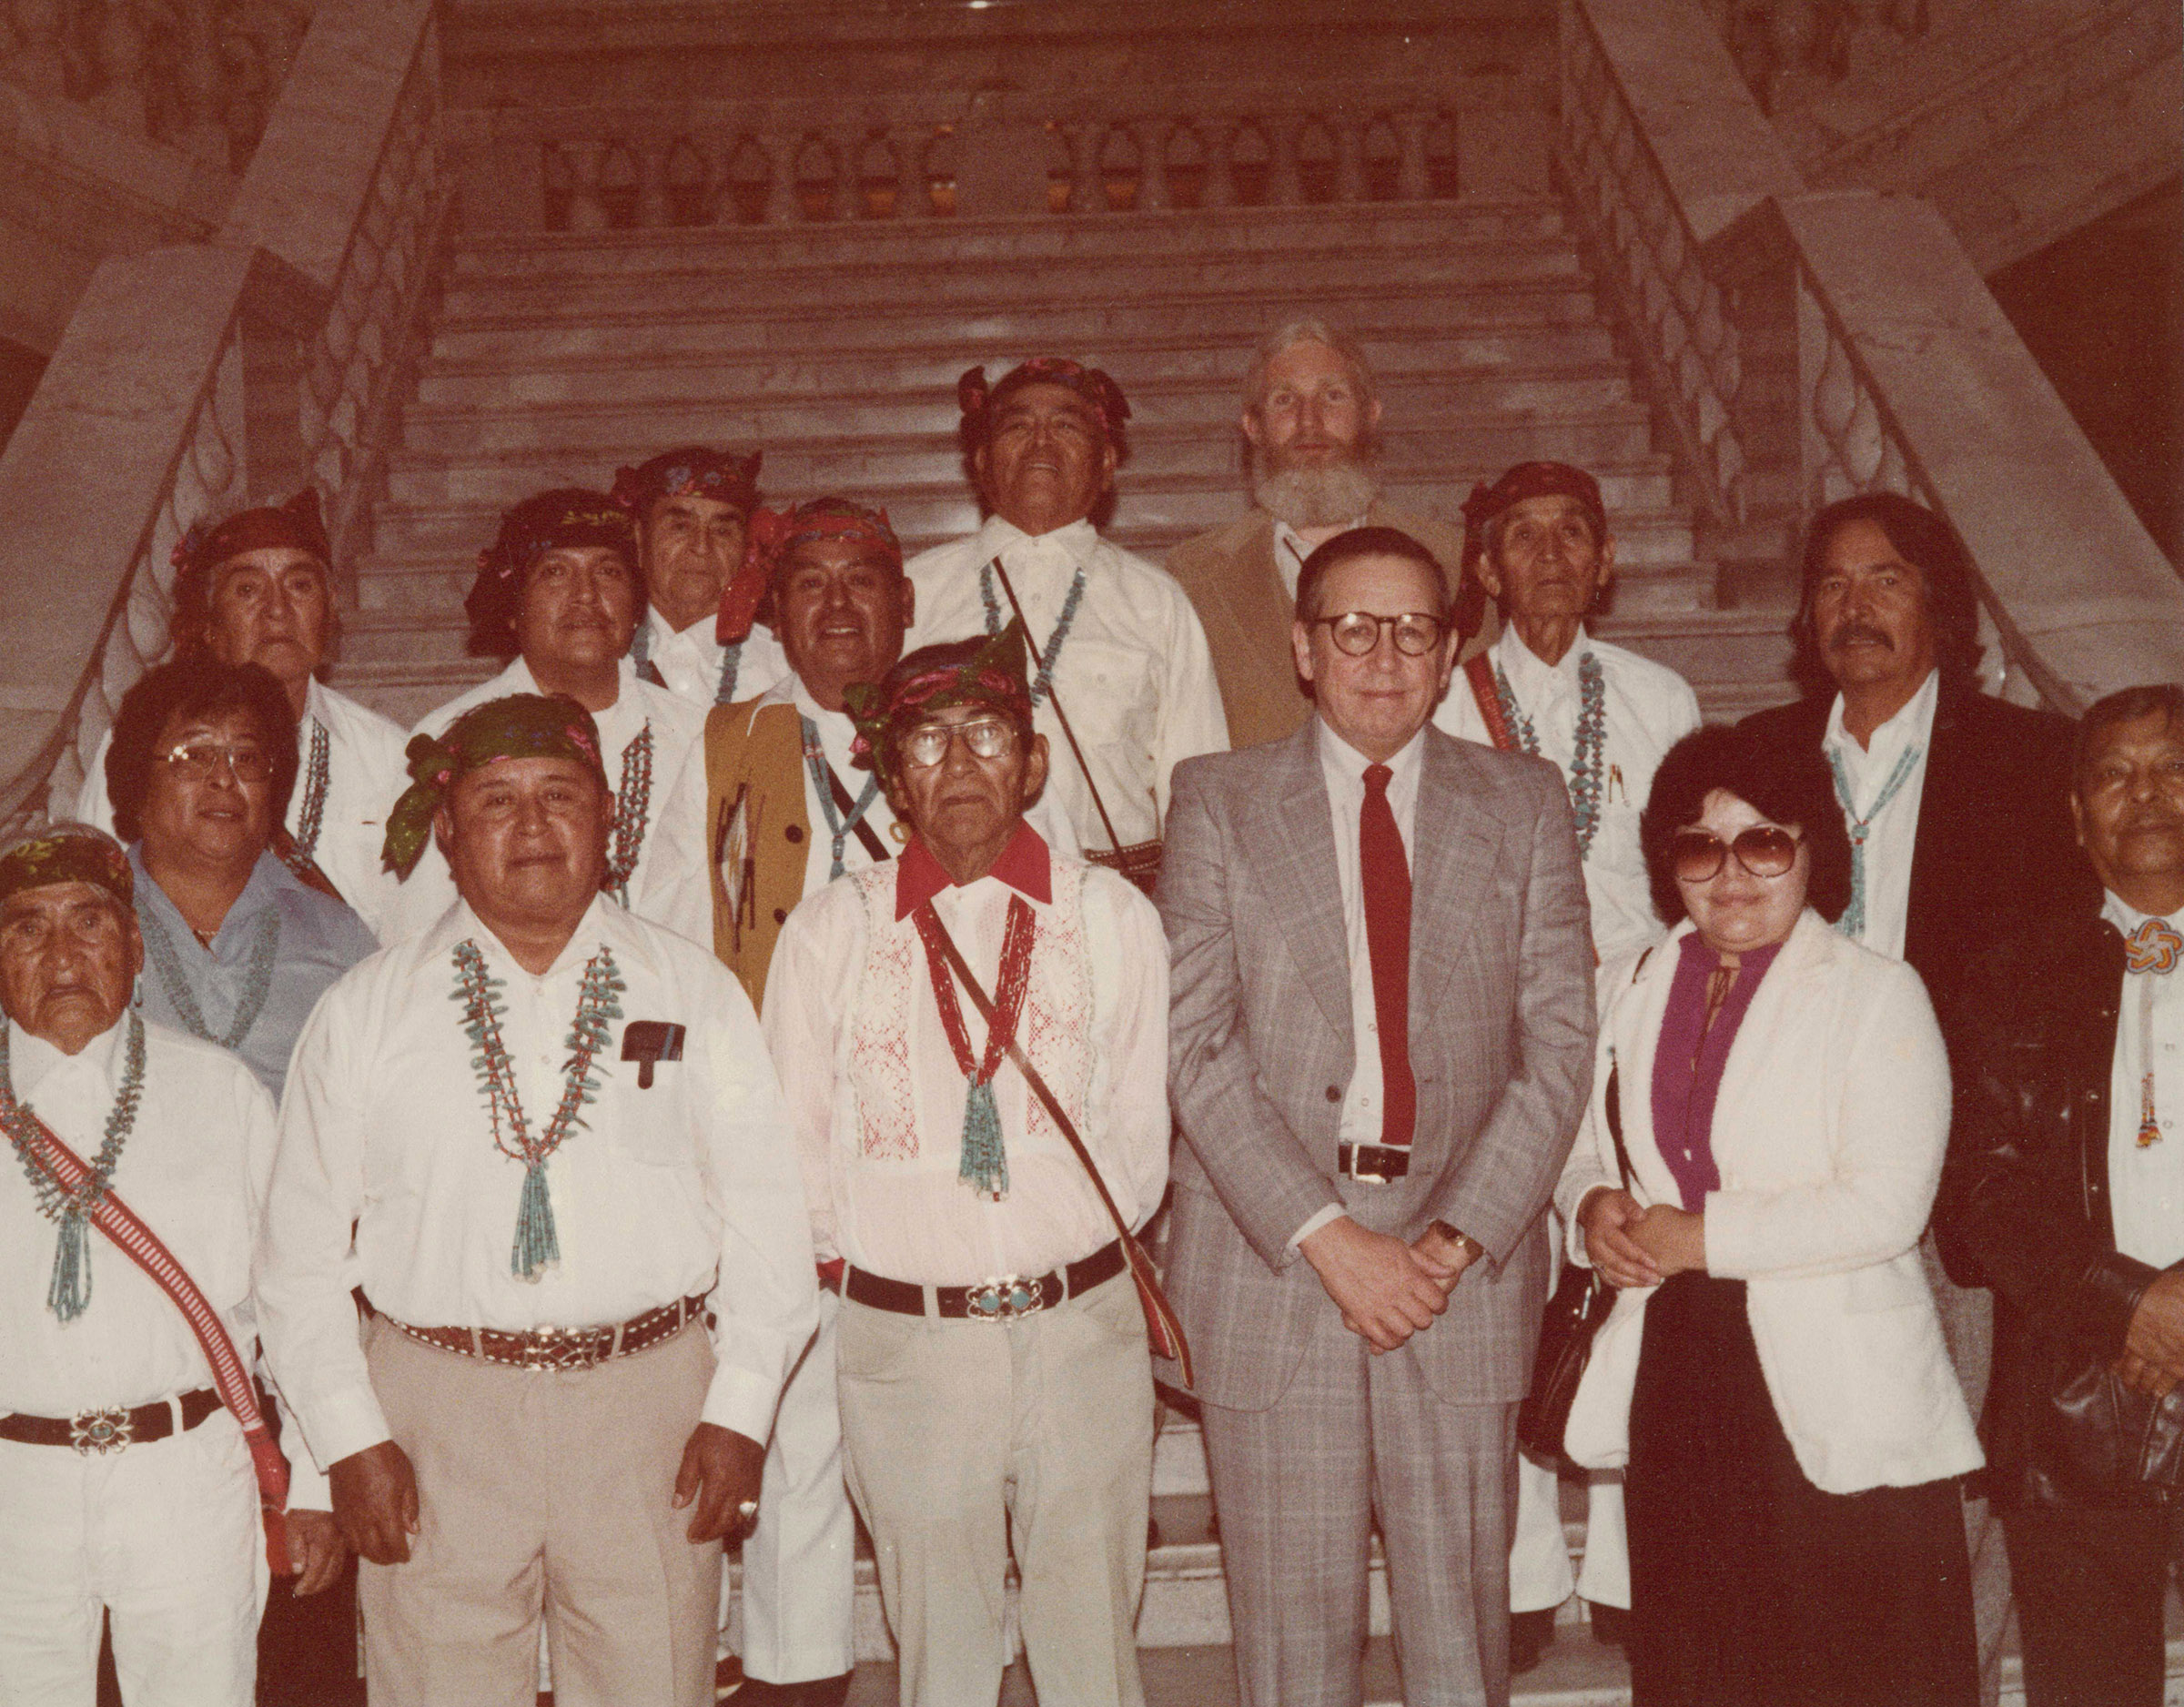 Zuni delegates and former American West Center director Floyd A. O'Neil at the Utah Capitol during the Zuni land claims trial, 1981. O'Neil was director from 1986-1996 and has worked at the center continuously since 1967.